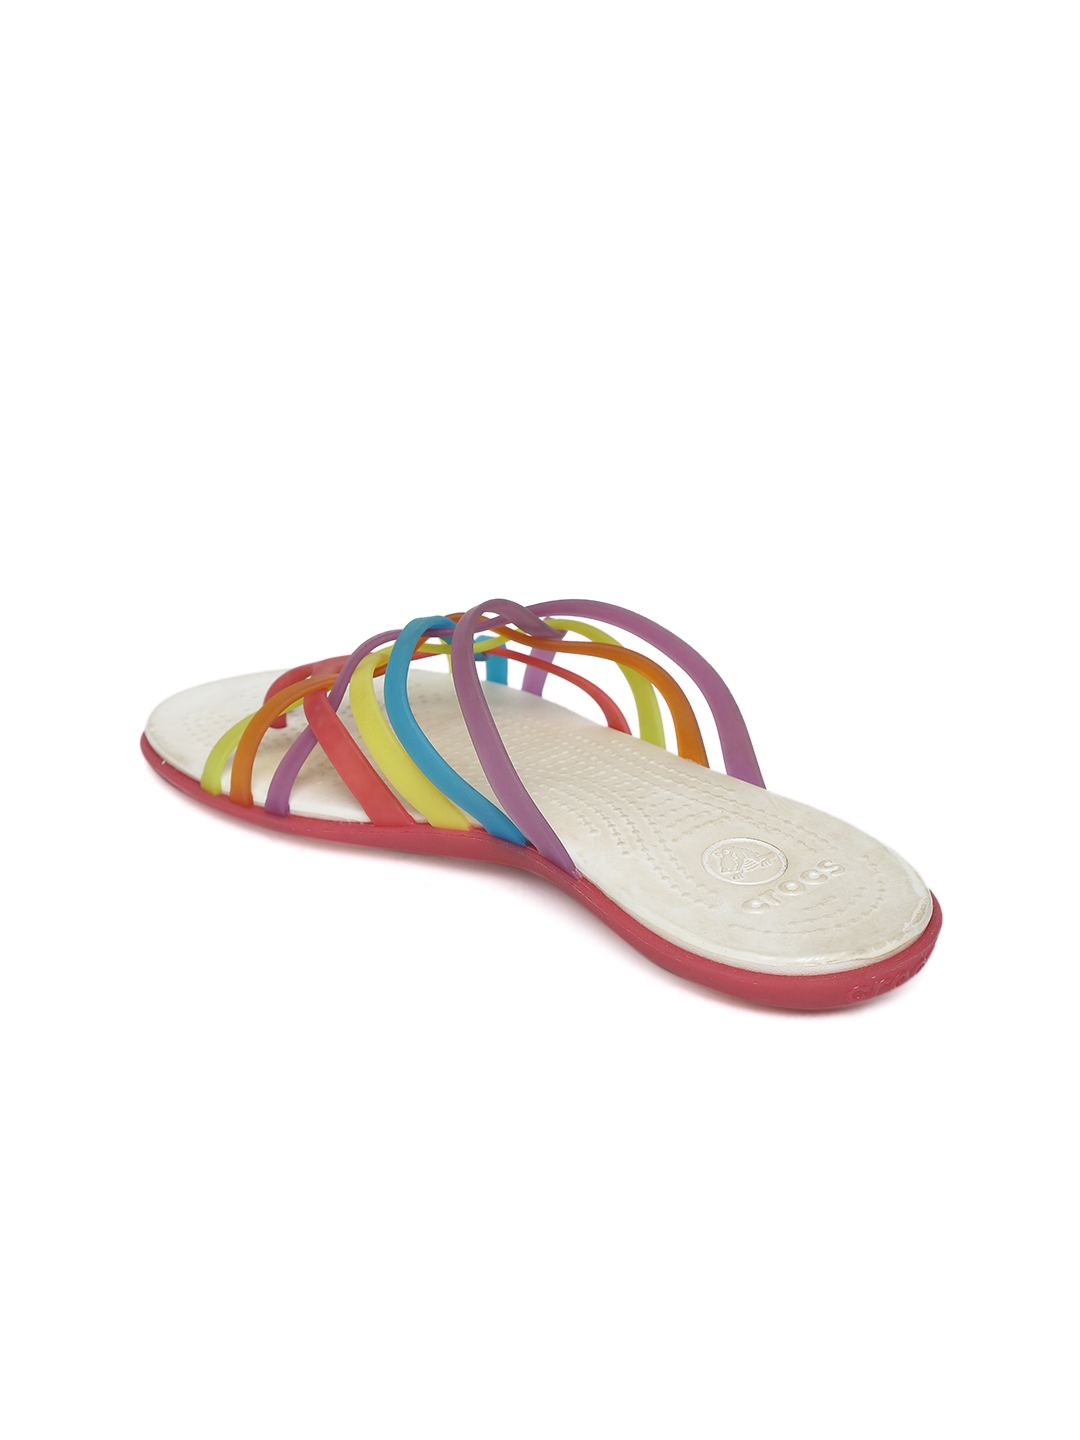 d76b8a0a0e8d Buy Crocs Women Multicoloured Strappy Huarache Flip Flops - Flip ...